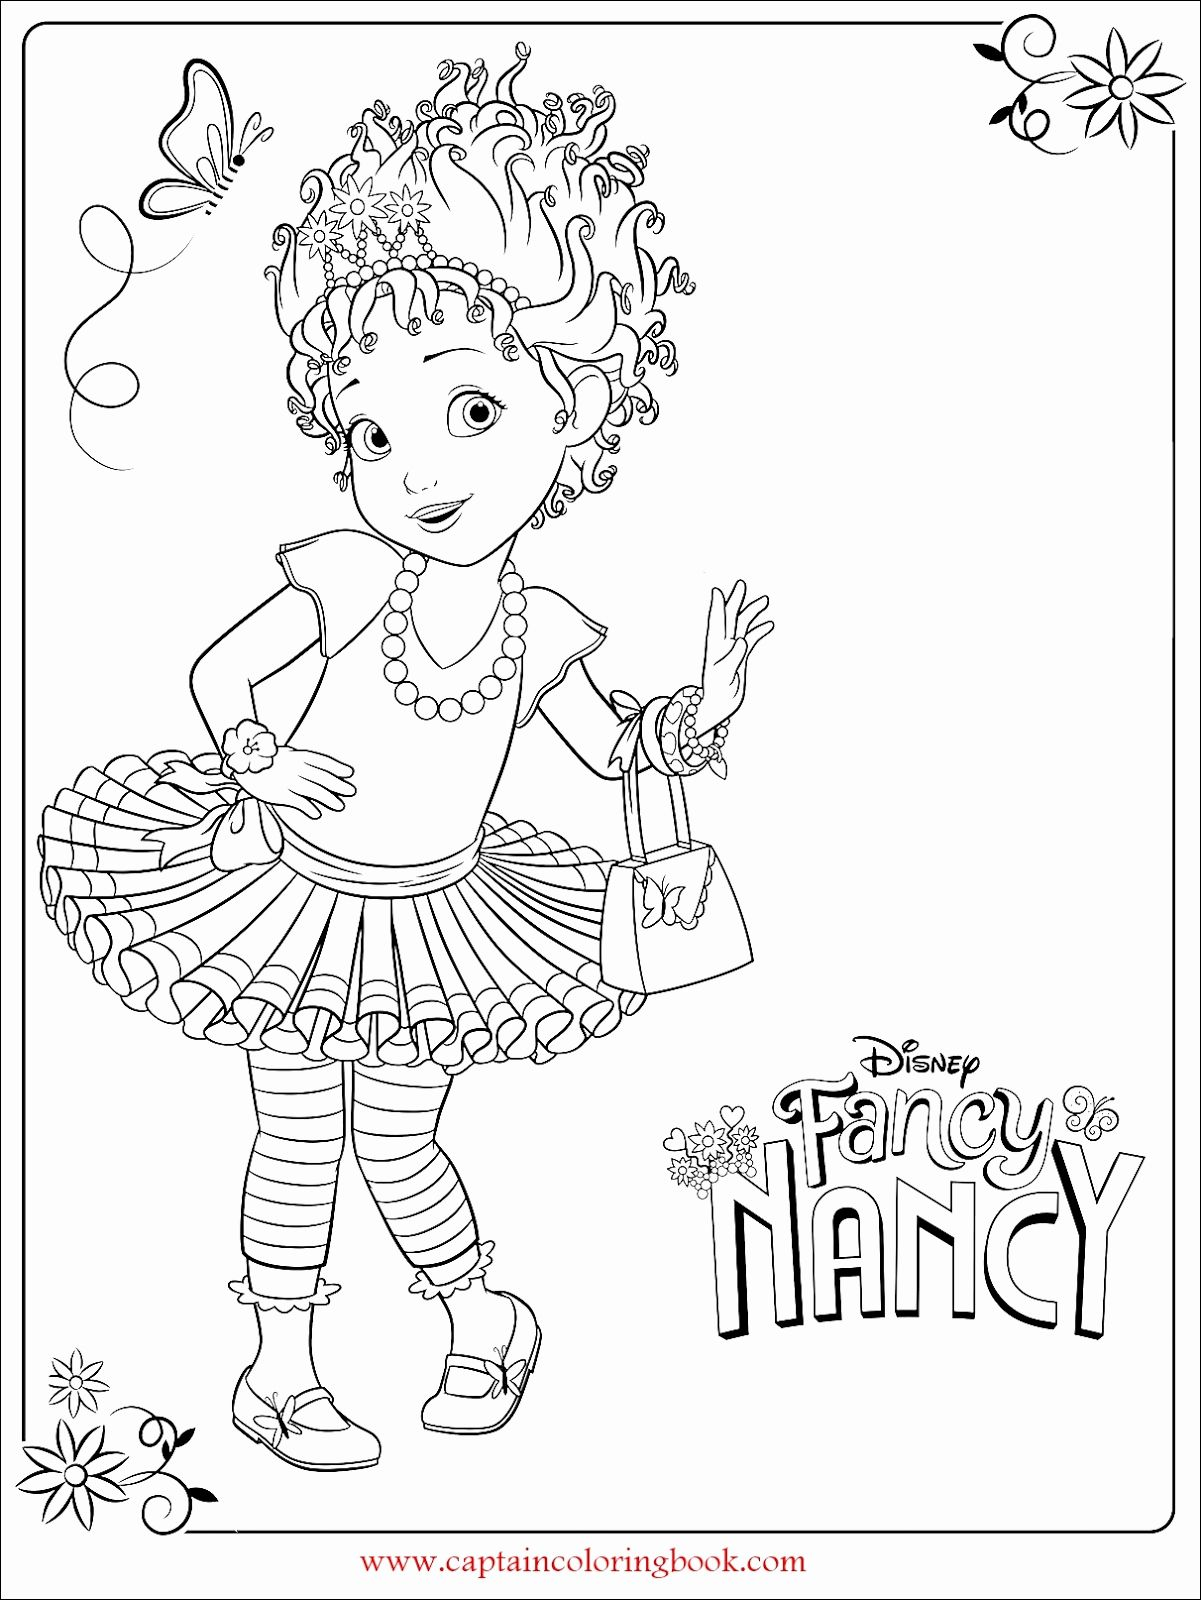 Pin On Mermaid Coloring Pages For Kids